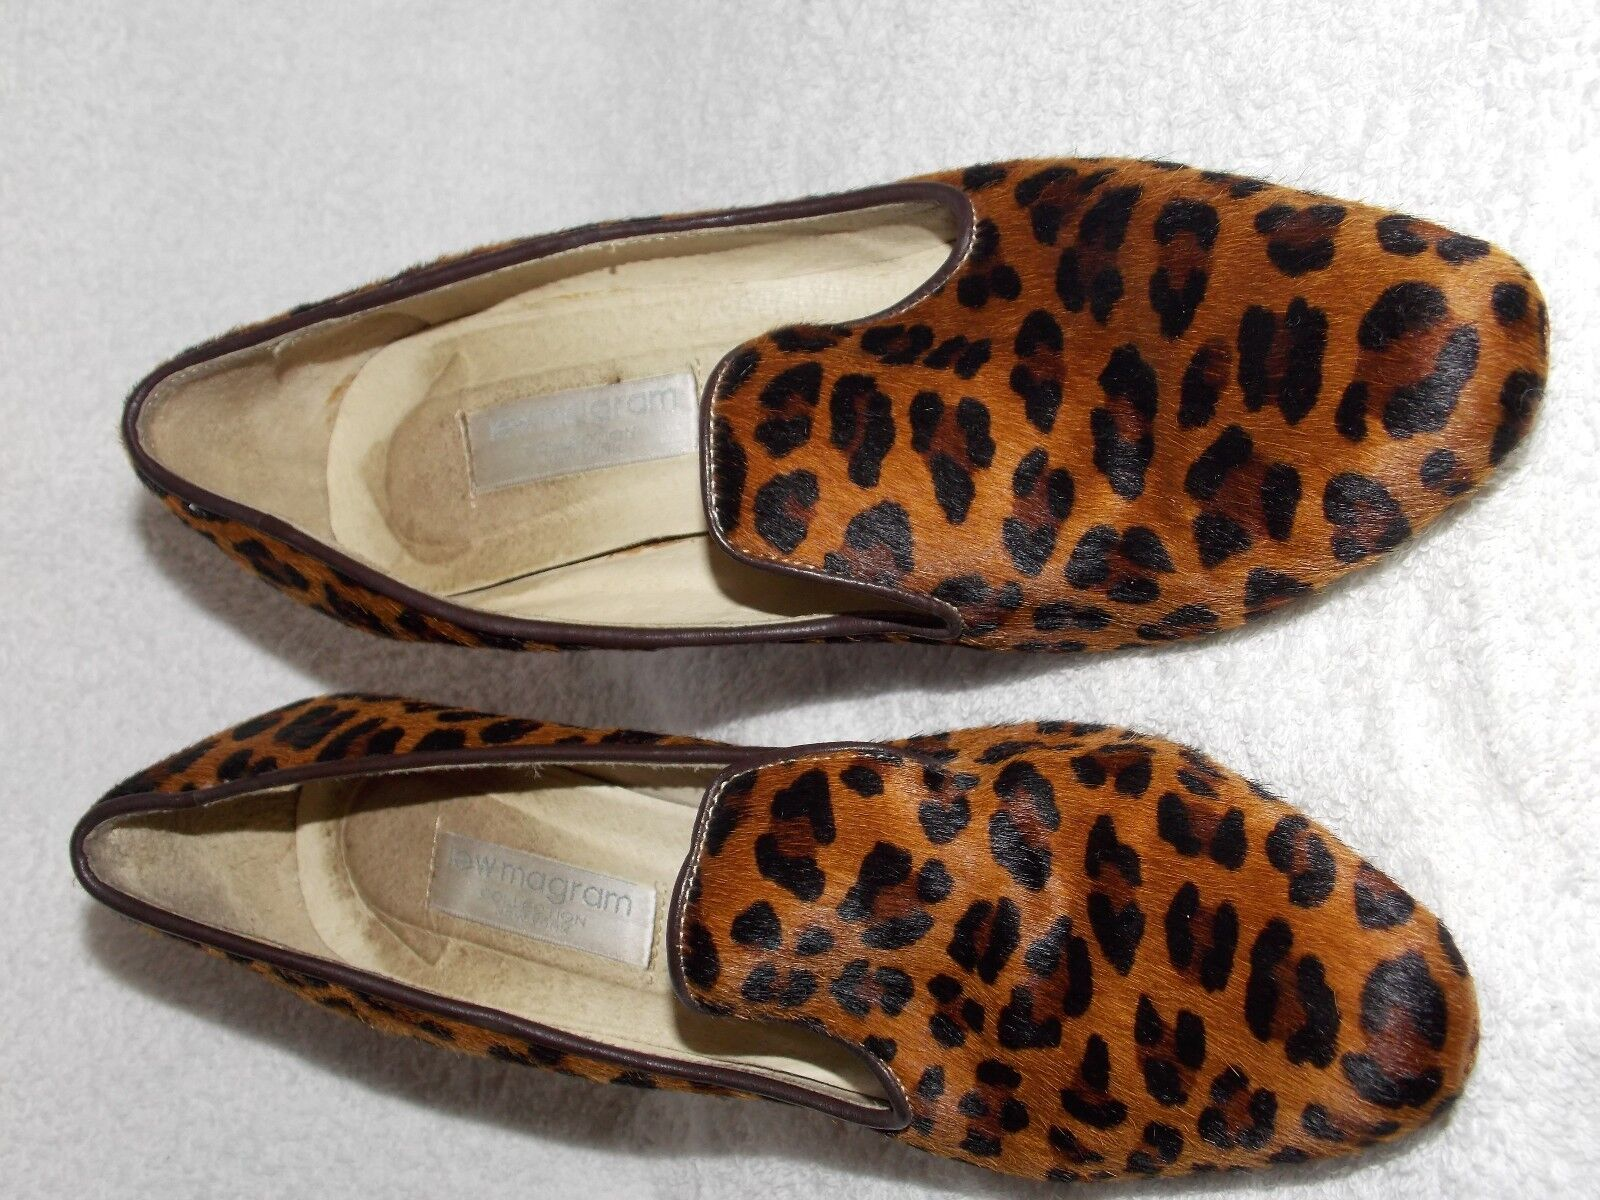 Lew Magram LEOPARD Cow Cow Cow Hair Pump Heels For Women 7.5 Used c1c0a4